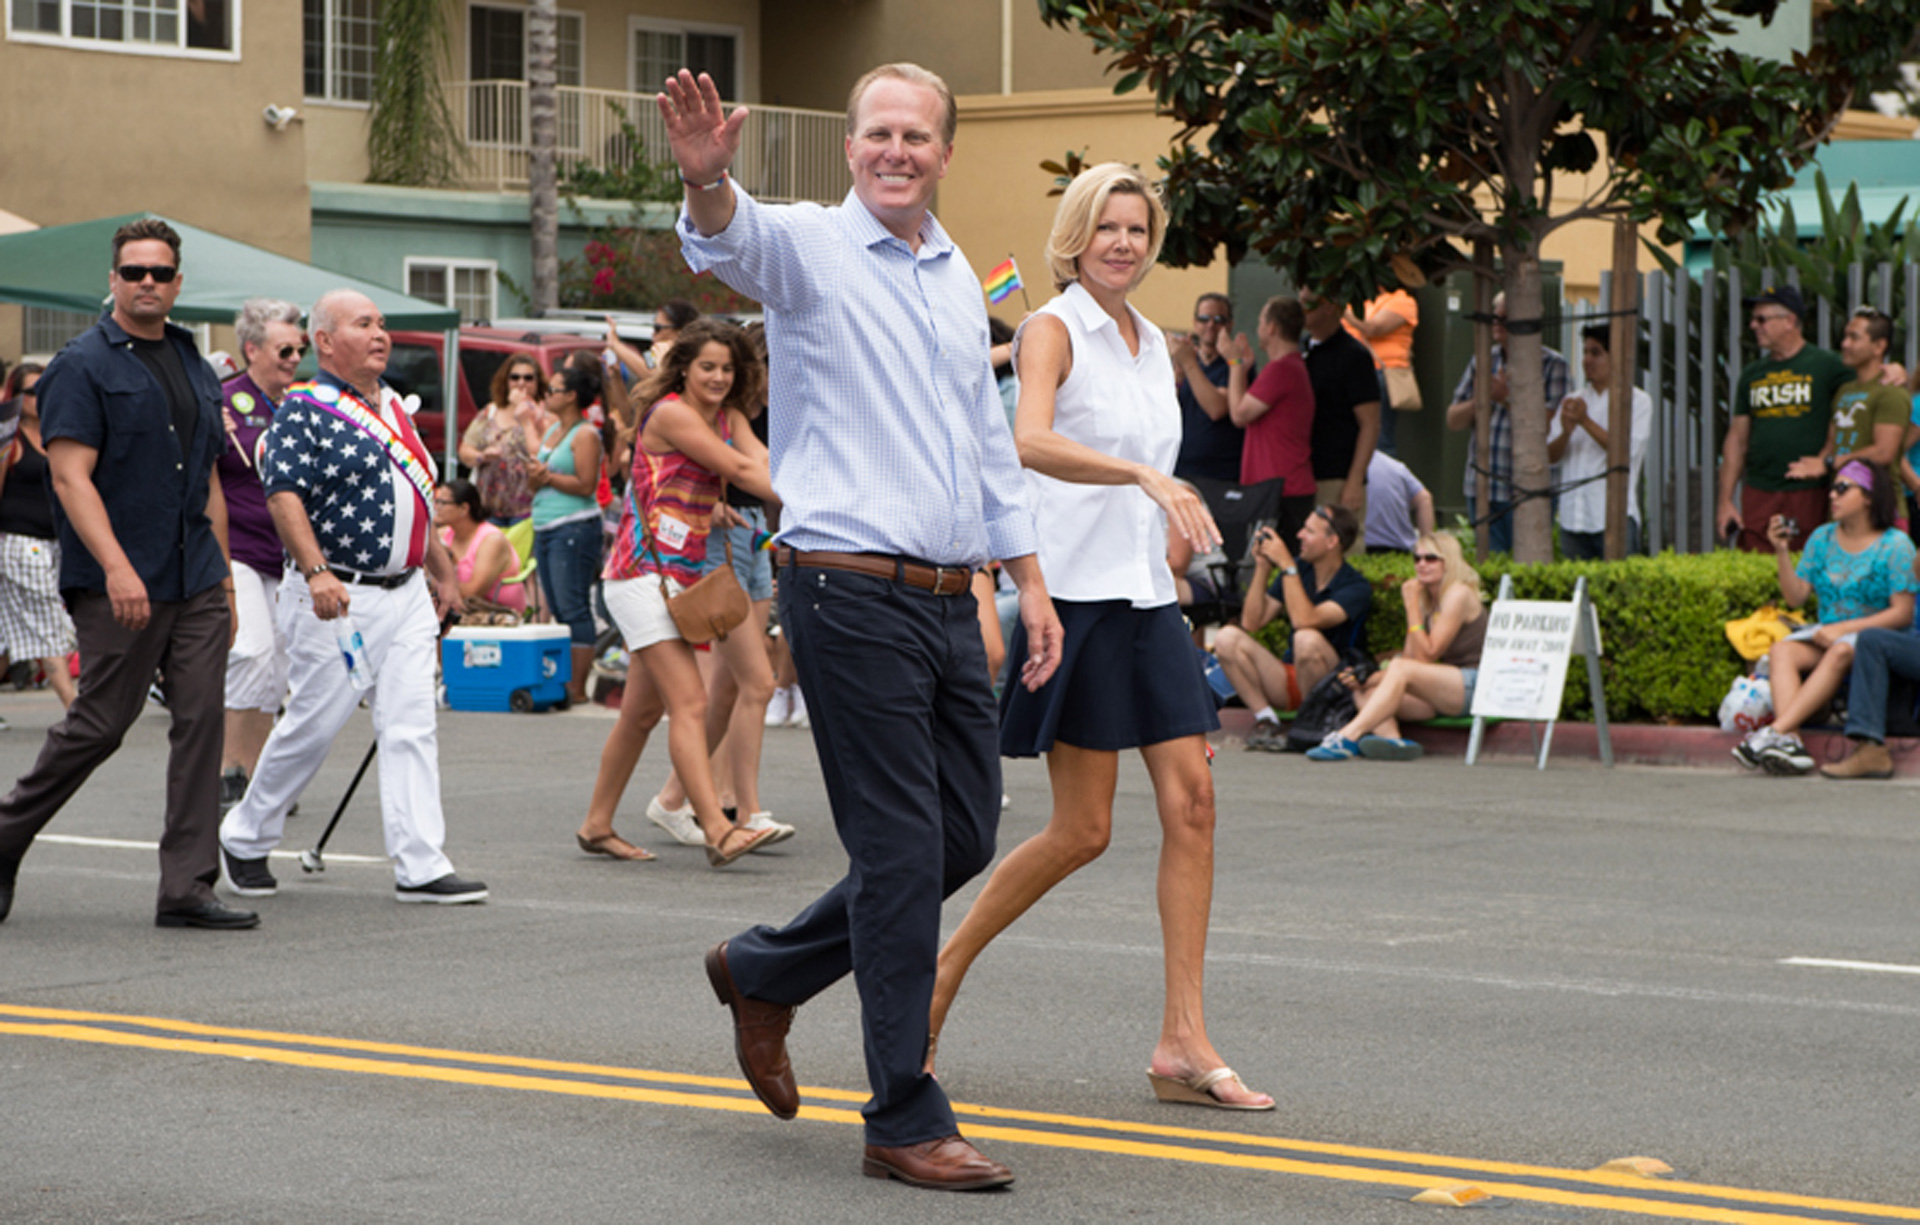 Mayor Kevin Faulconer marches in San Diego's 2014 LGBT Pride Parade. San Diego is the largest city in the U.S. with a Republican mayor.